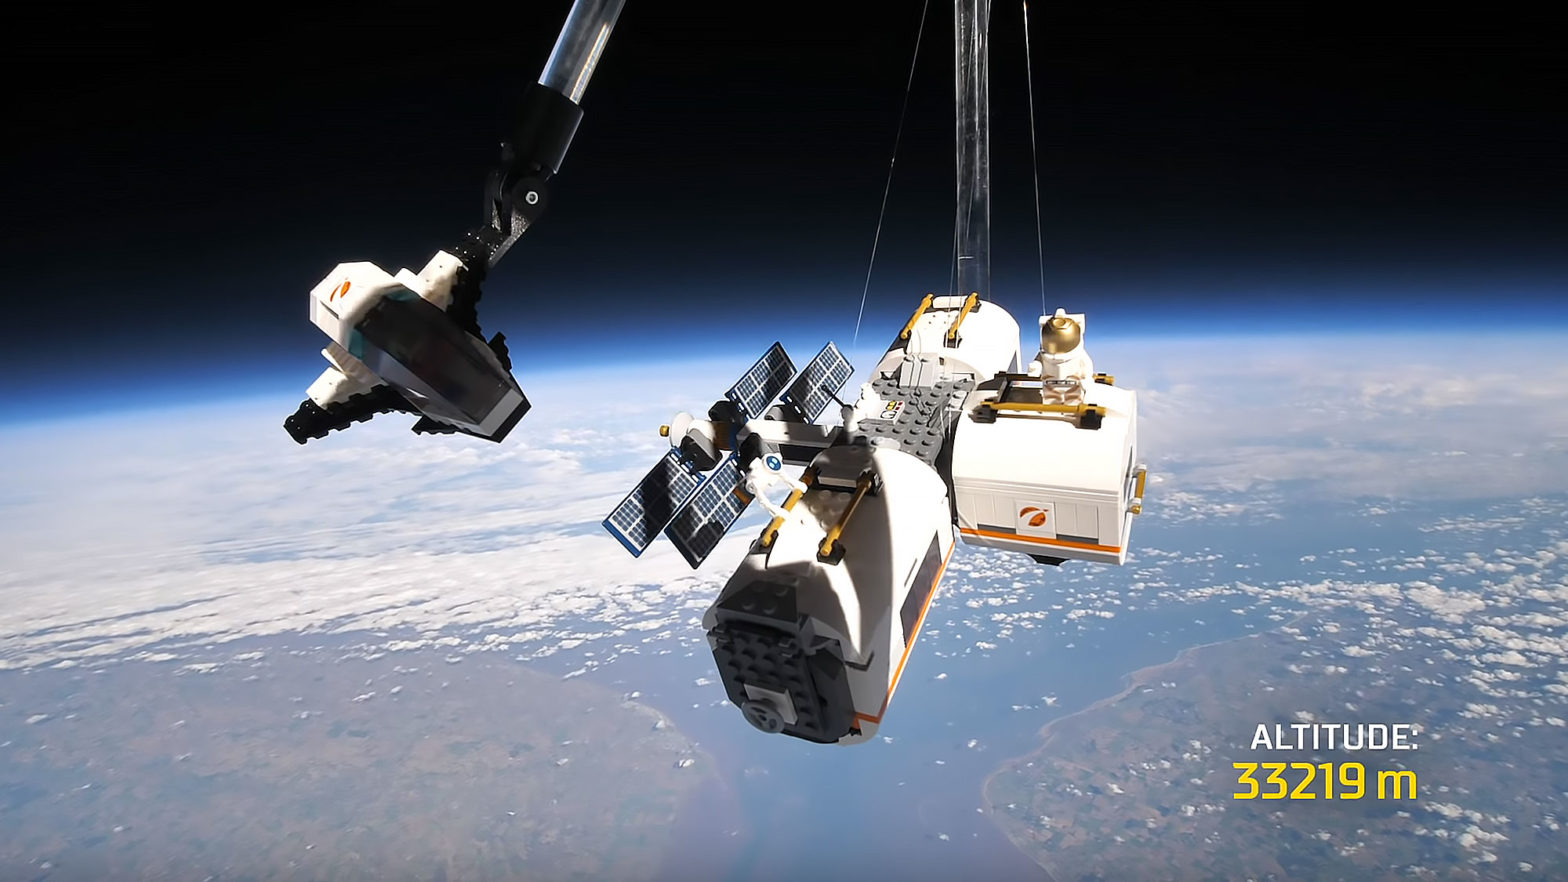 LEGO City Lunar Space Station in Space